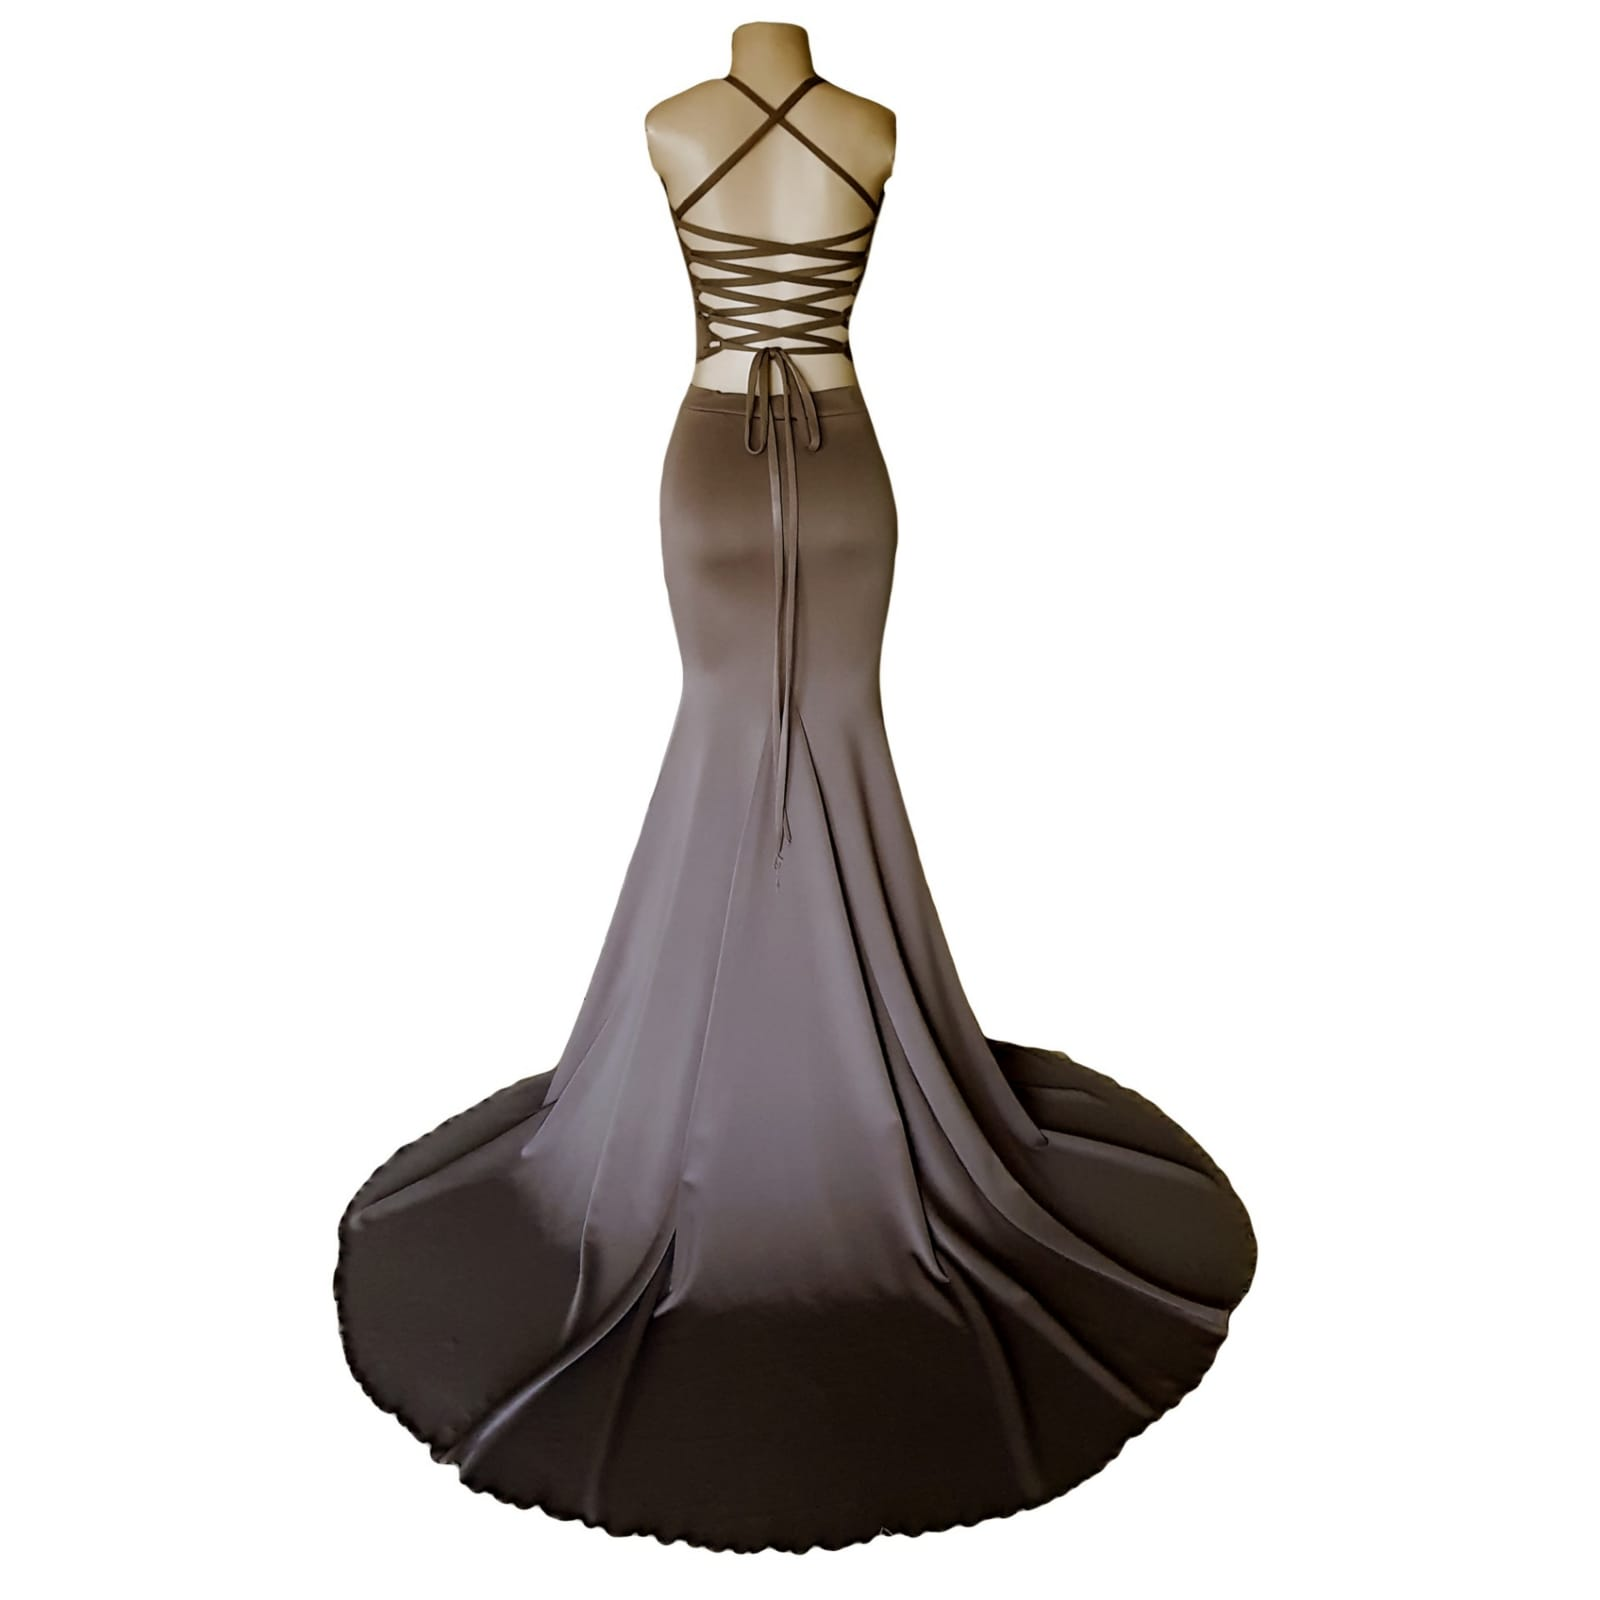 2 piece brown gray prom dress 4 2 piece brown gray prom dress. Skirt as a soft mermaid. Top with an open lace up back. Bust detailed with sequins. With a long train.